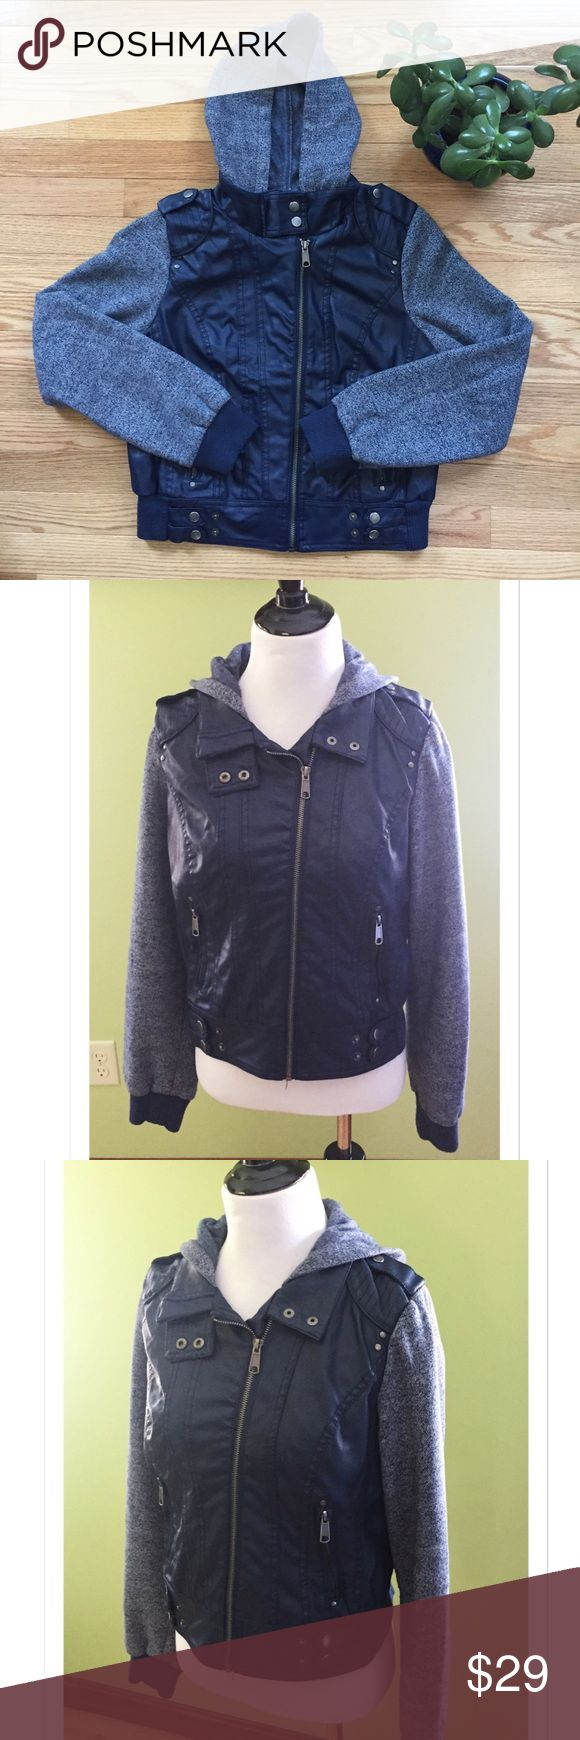 "New Look Vegan Leather Hooded Moto Jacket Beautiful Navy Moto Jacket in Vegan Leather with contrast sleeves by New Look. Measures 18"" across the bust; 21"" Length. EUC New Look Jackets & Coats Utility Jackets"